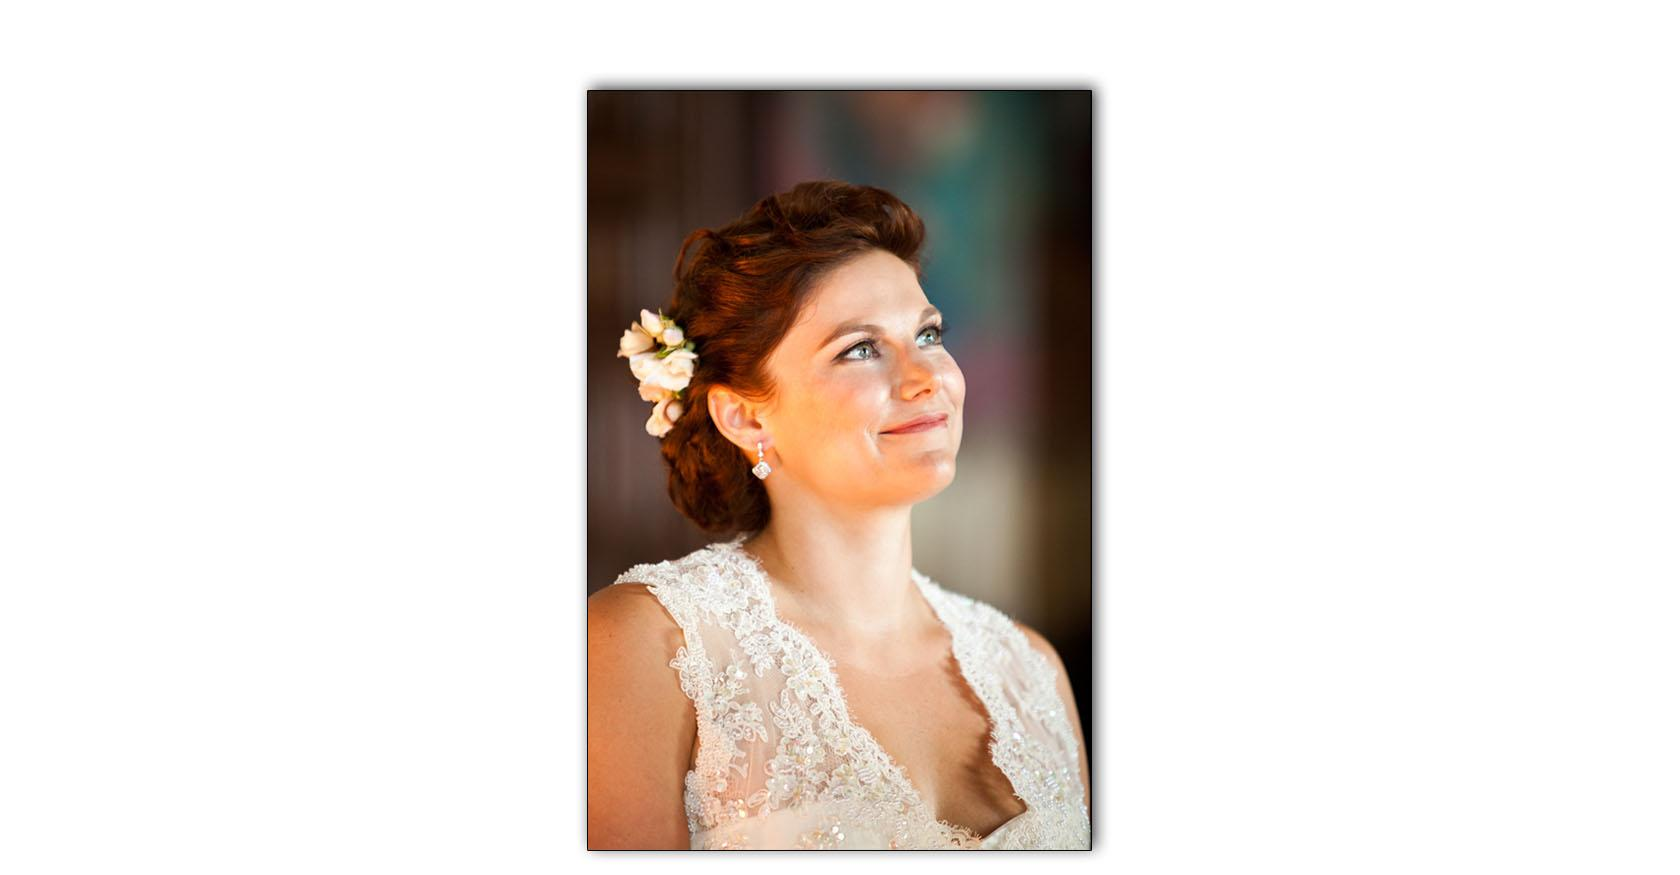 Bride glowing during wedding ceremony in Santa Barbara California Courthouse